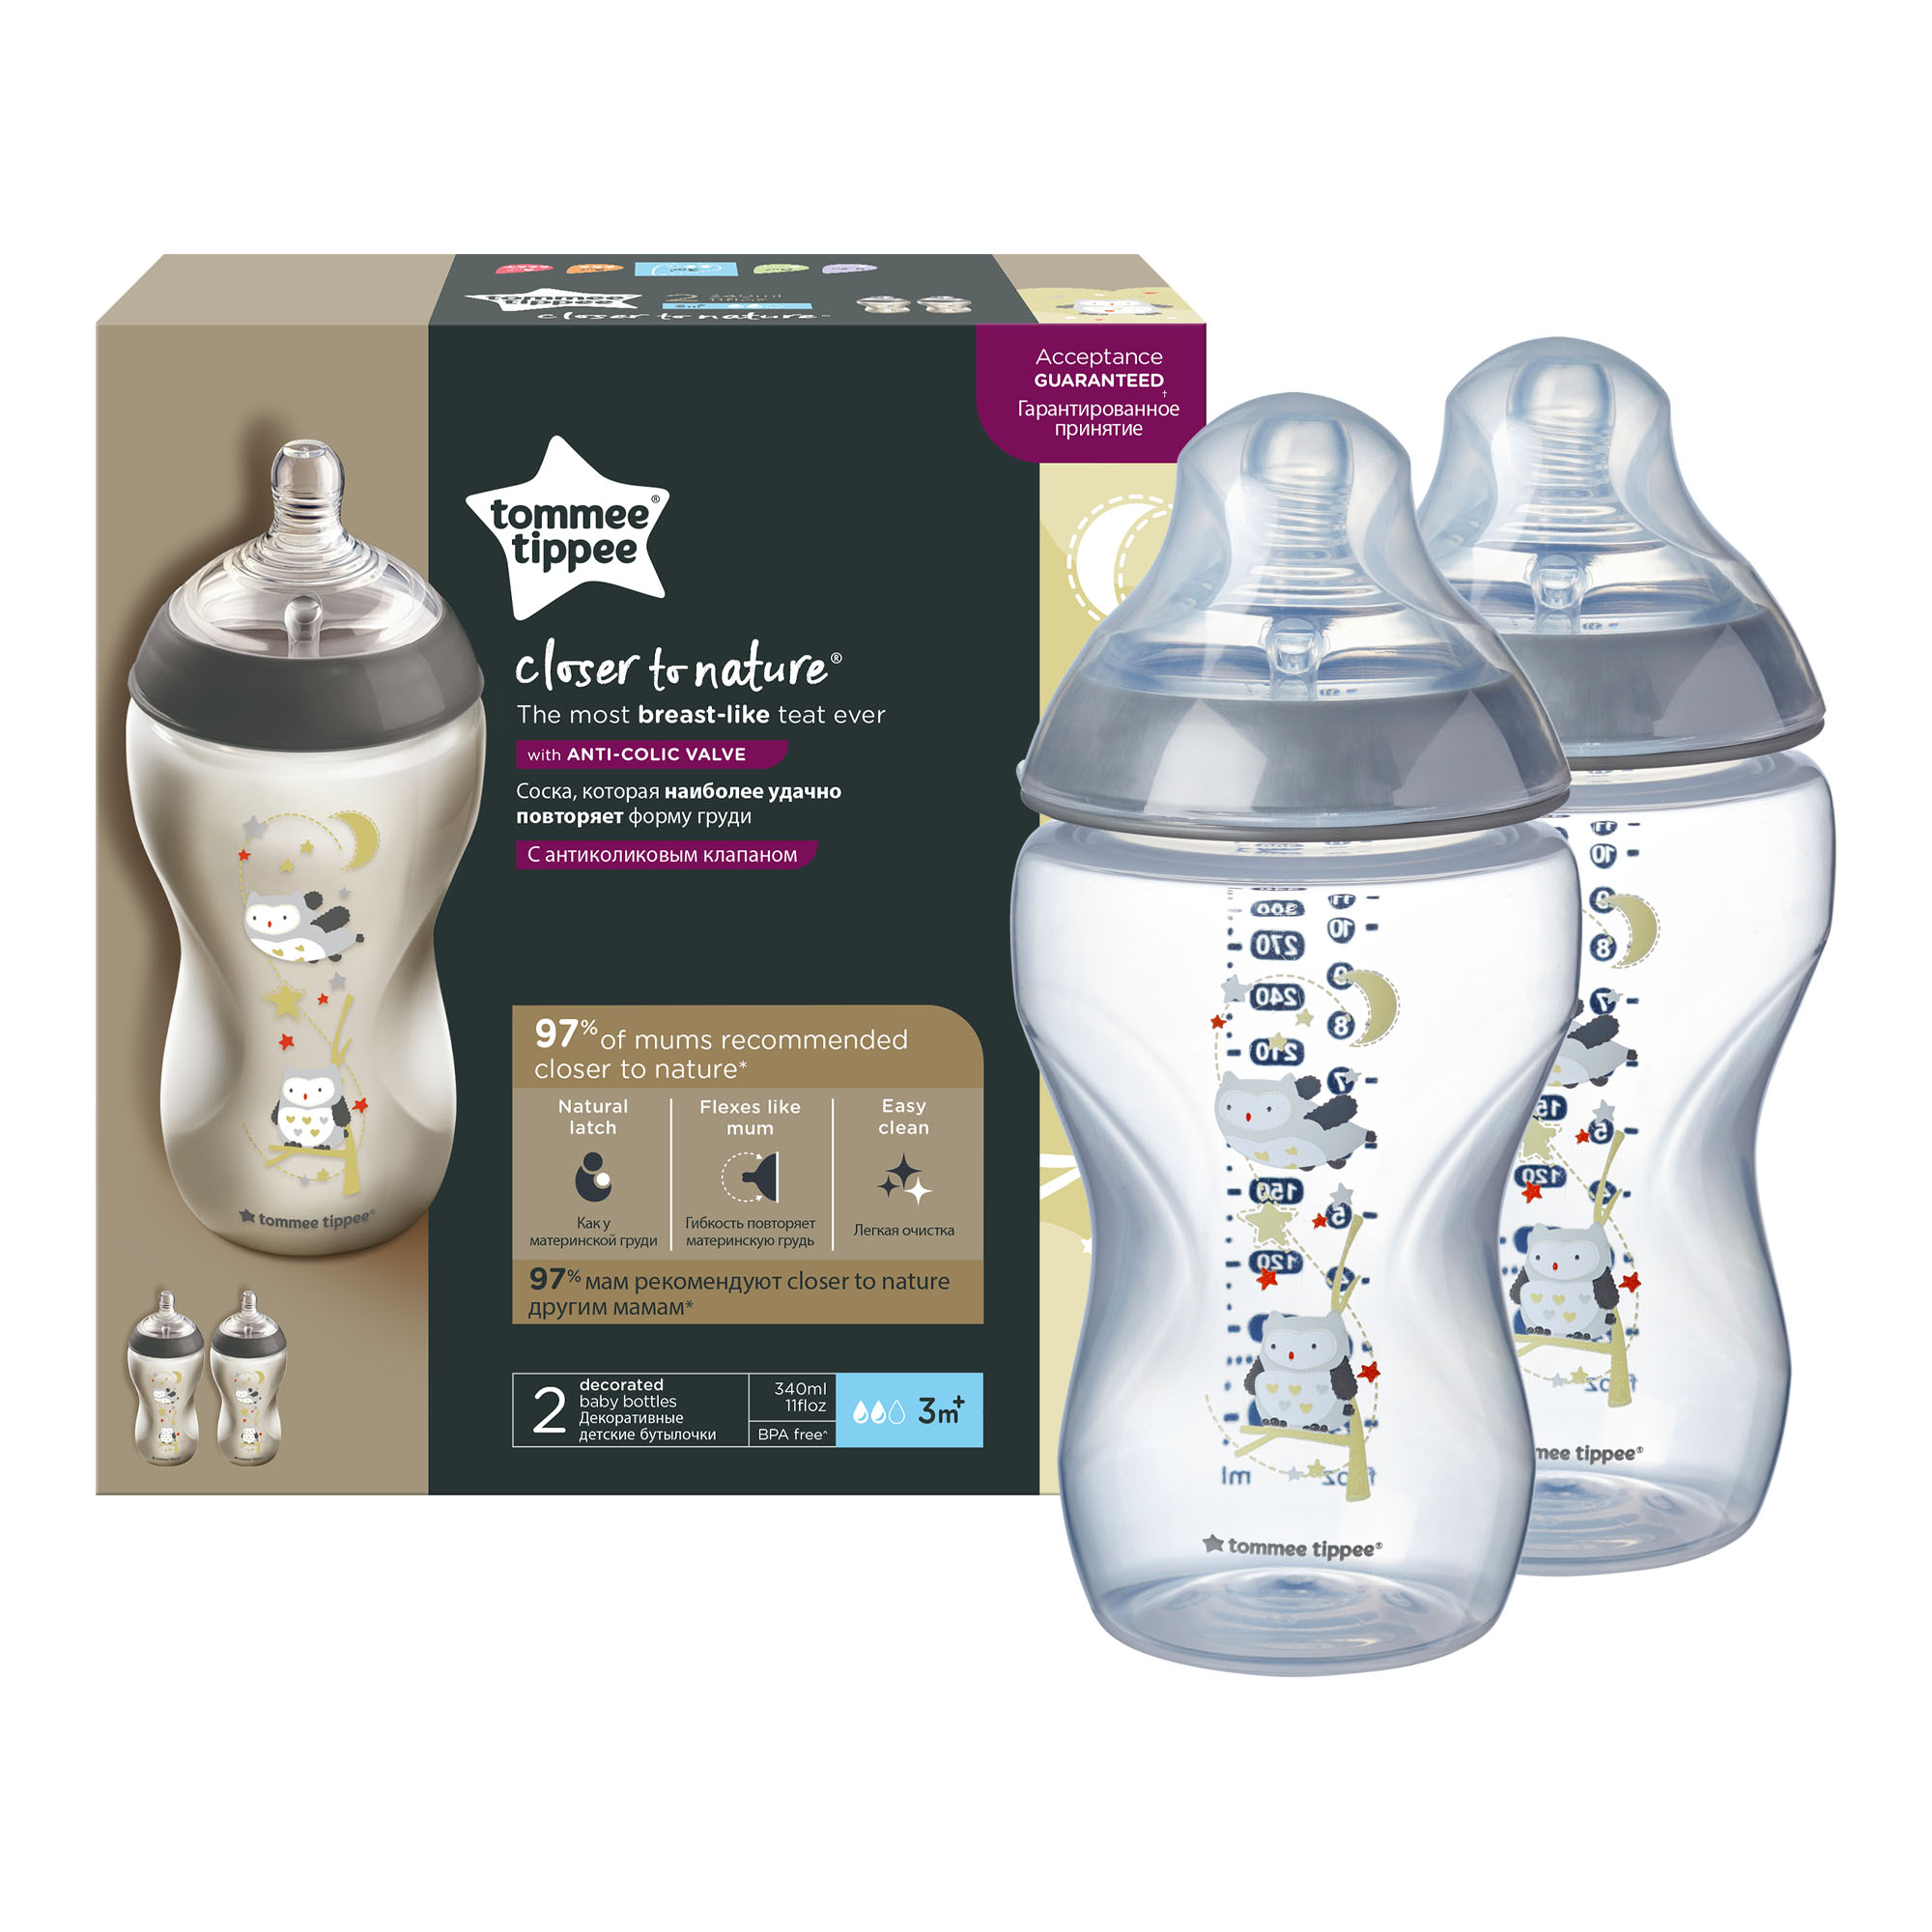 Biberon Tommee Tippee Closer to Nature, 340 ml, PP, Bufnita, 3 luni +, 2 buc